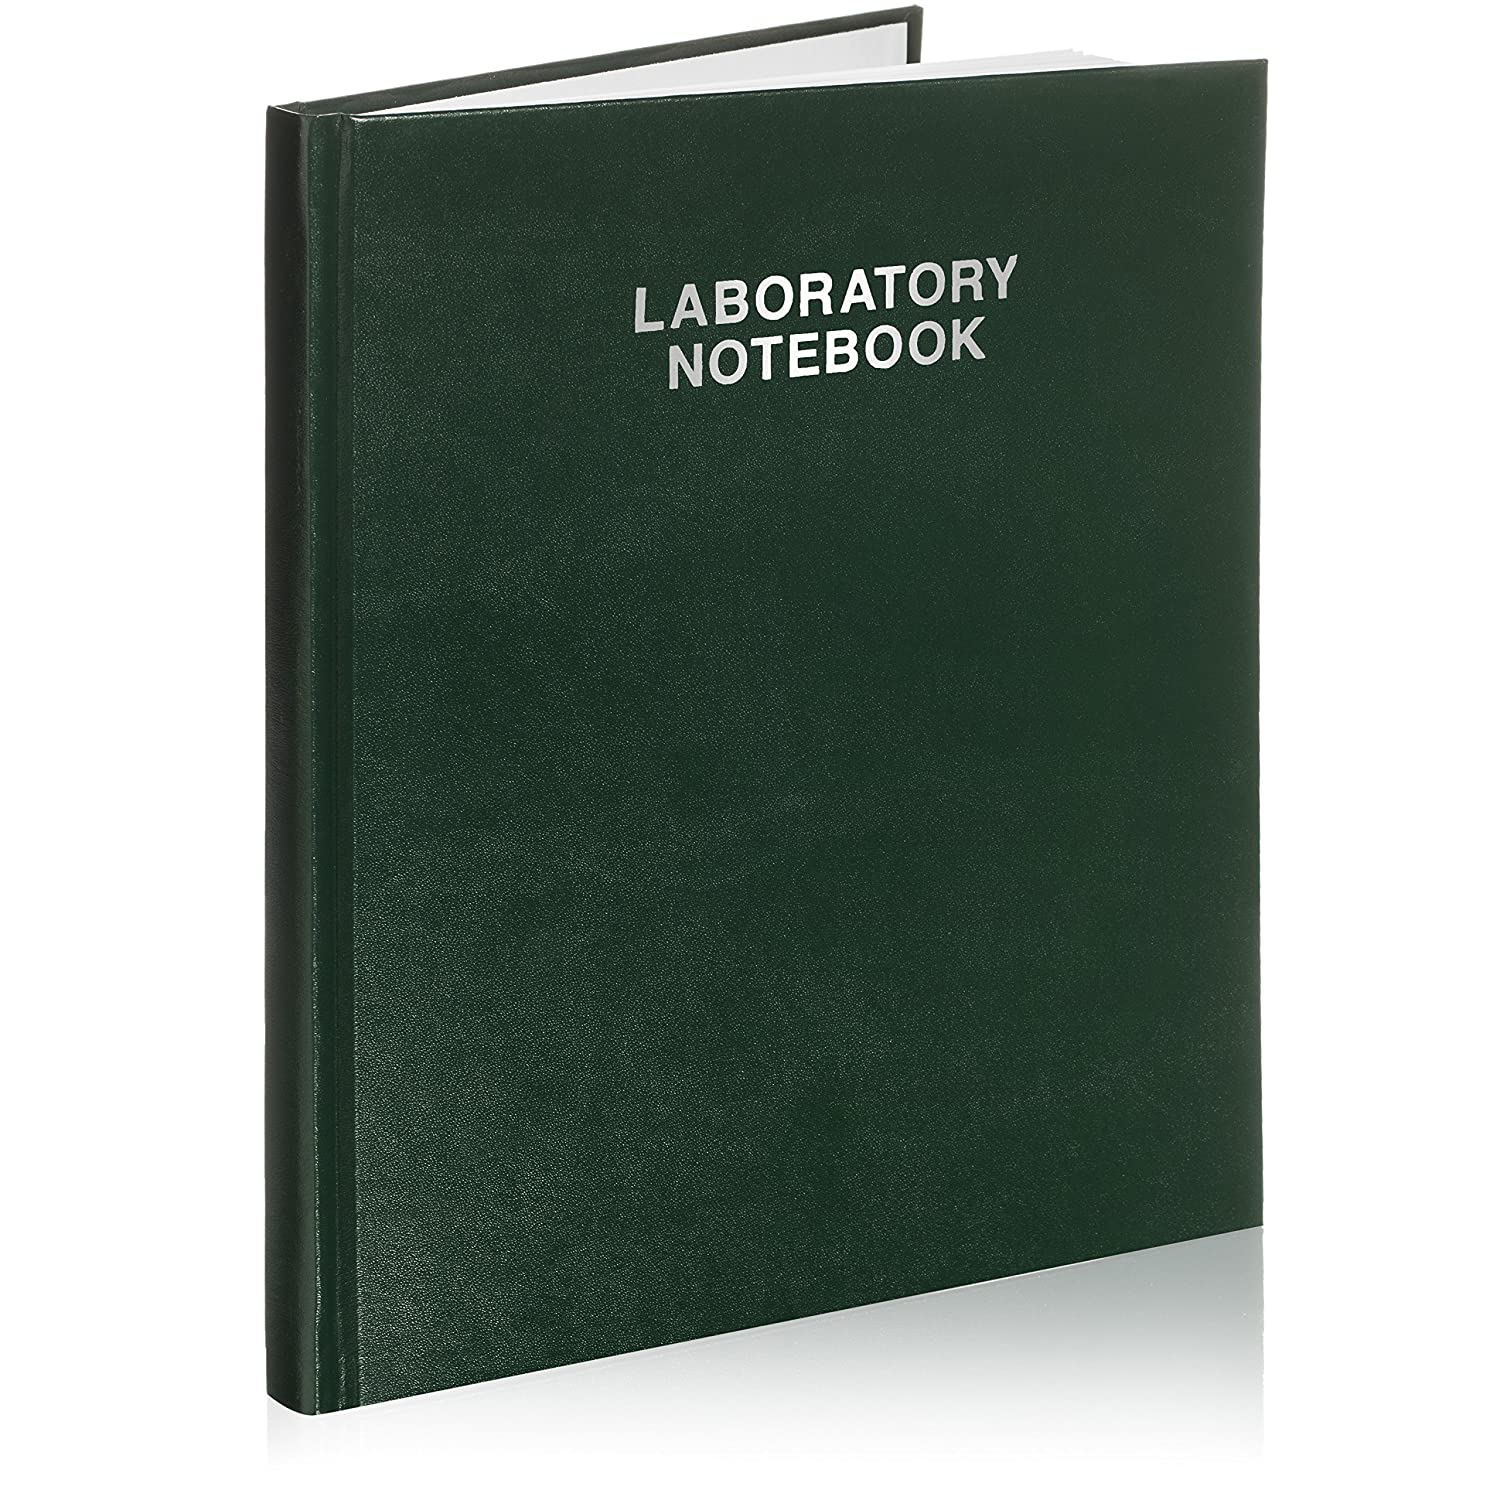 96 Pages 3001HC Green Hard Cover Scientific Notebook Company Laboratory Notebook